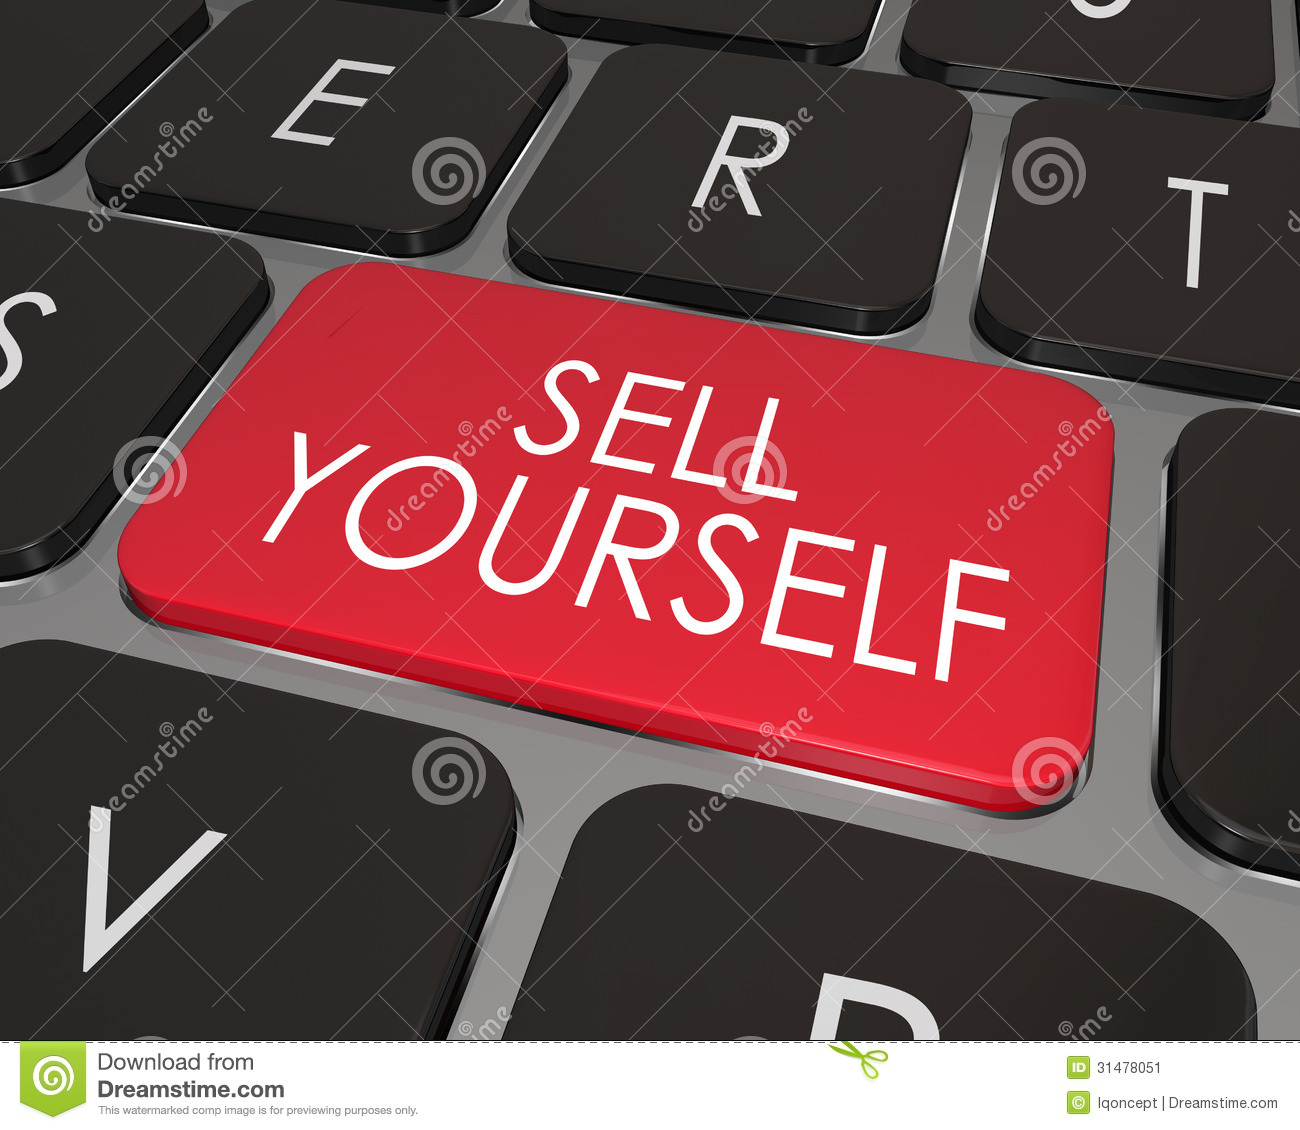 sell yourself computer keyboard red key promotion